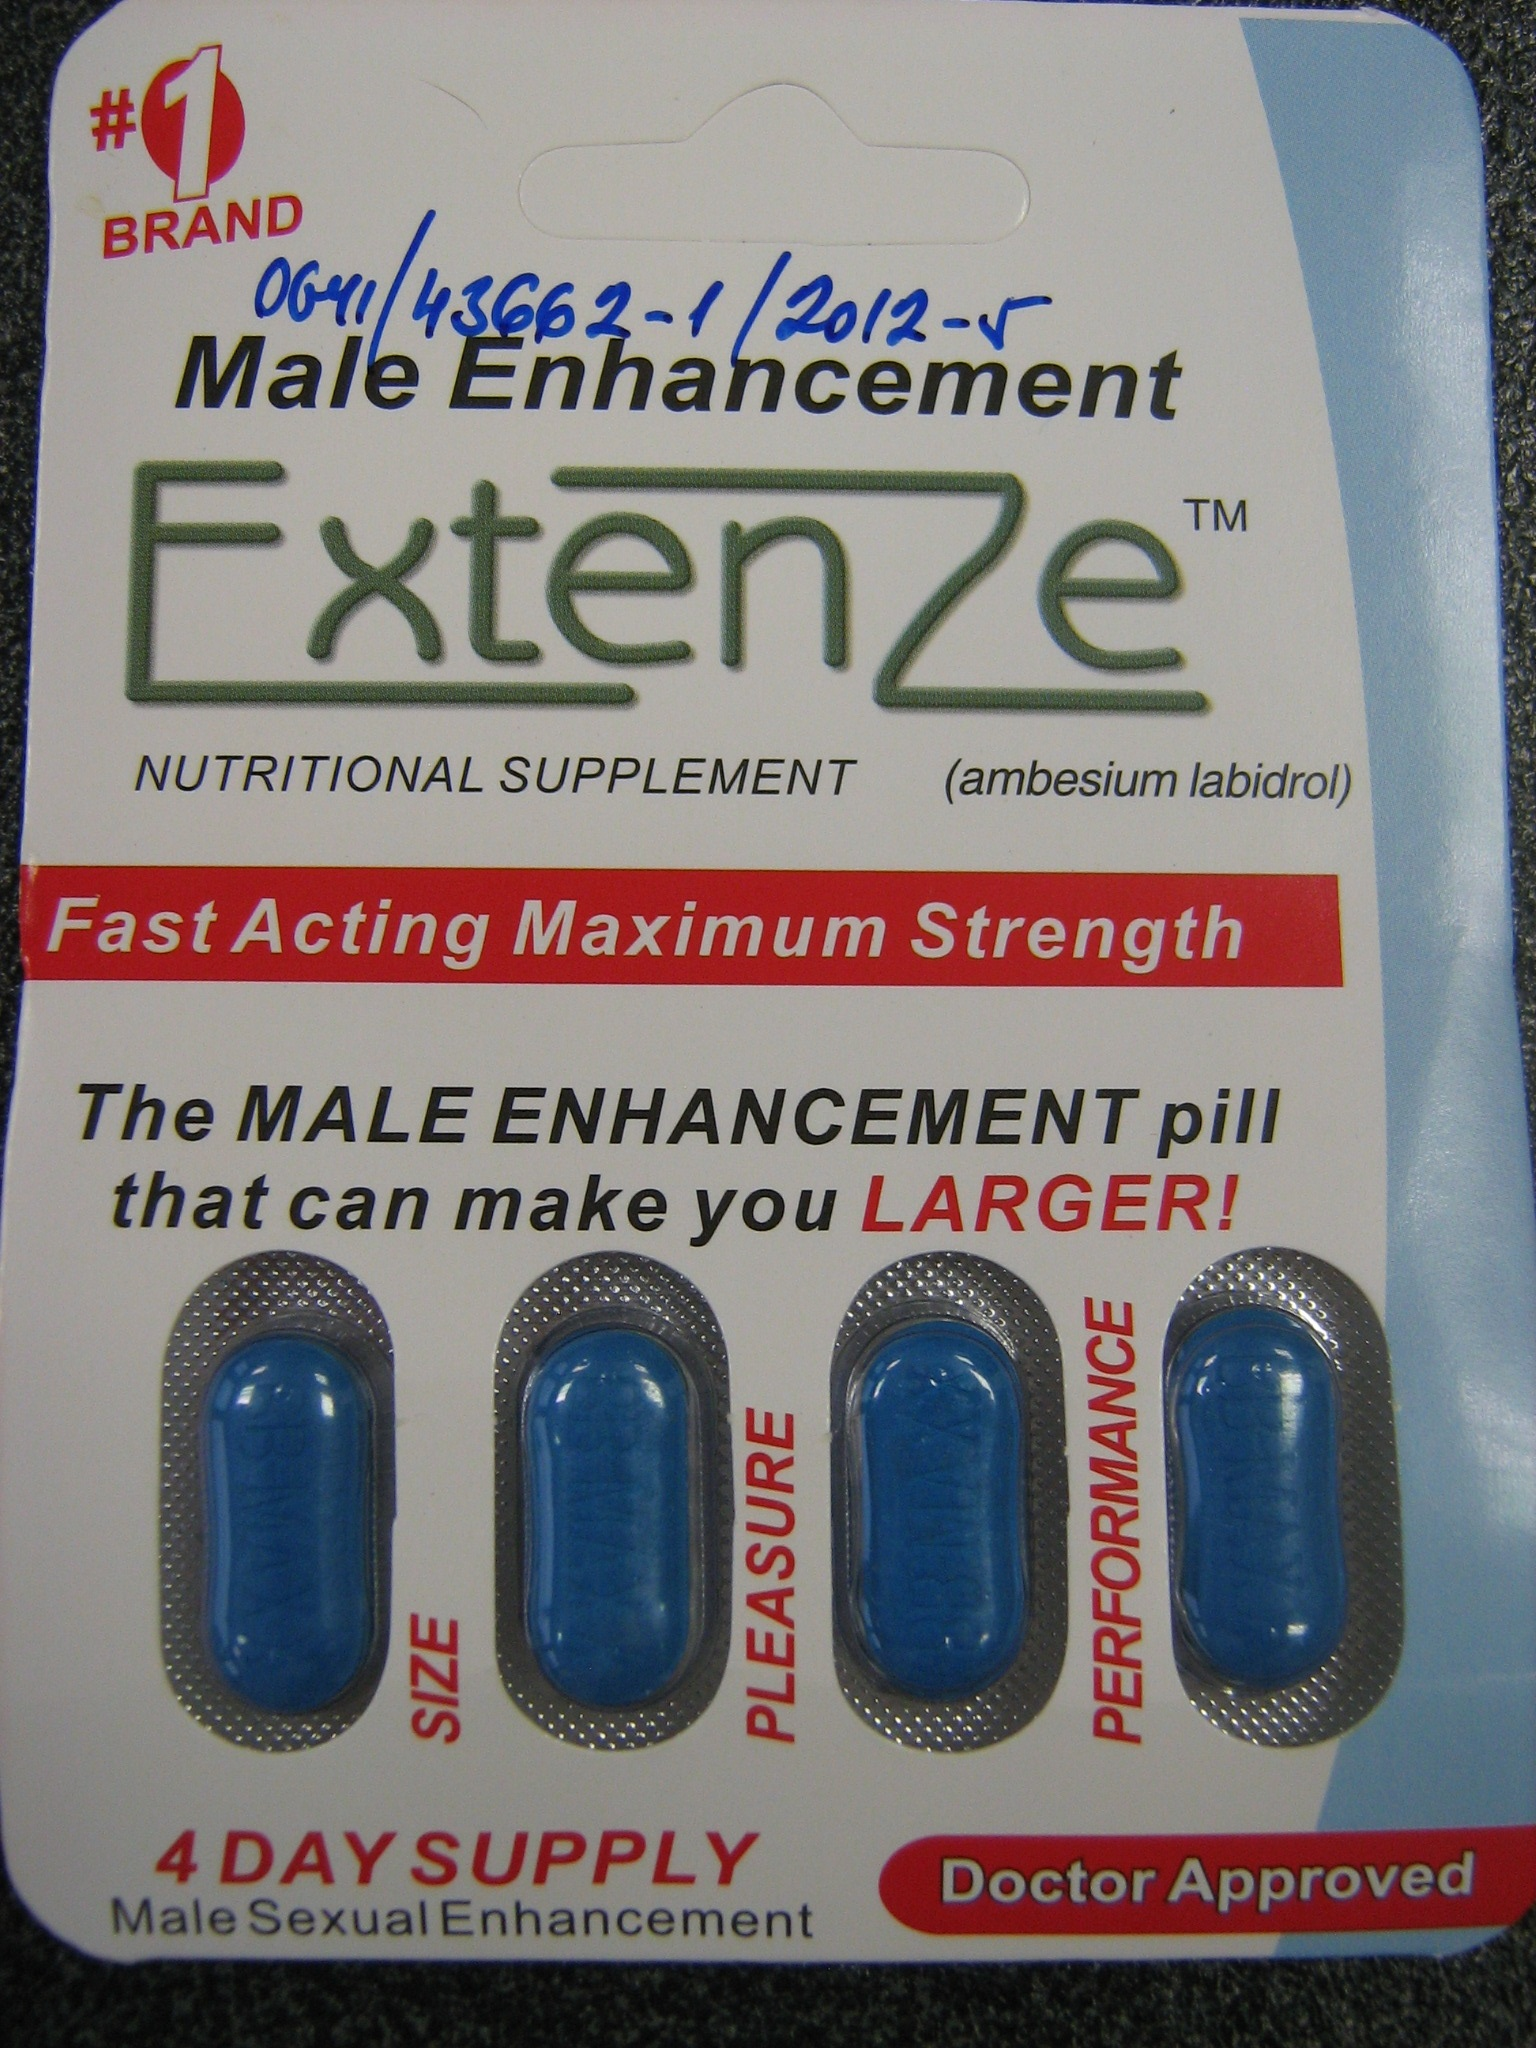 Image of the illigal product: Extenze